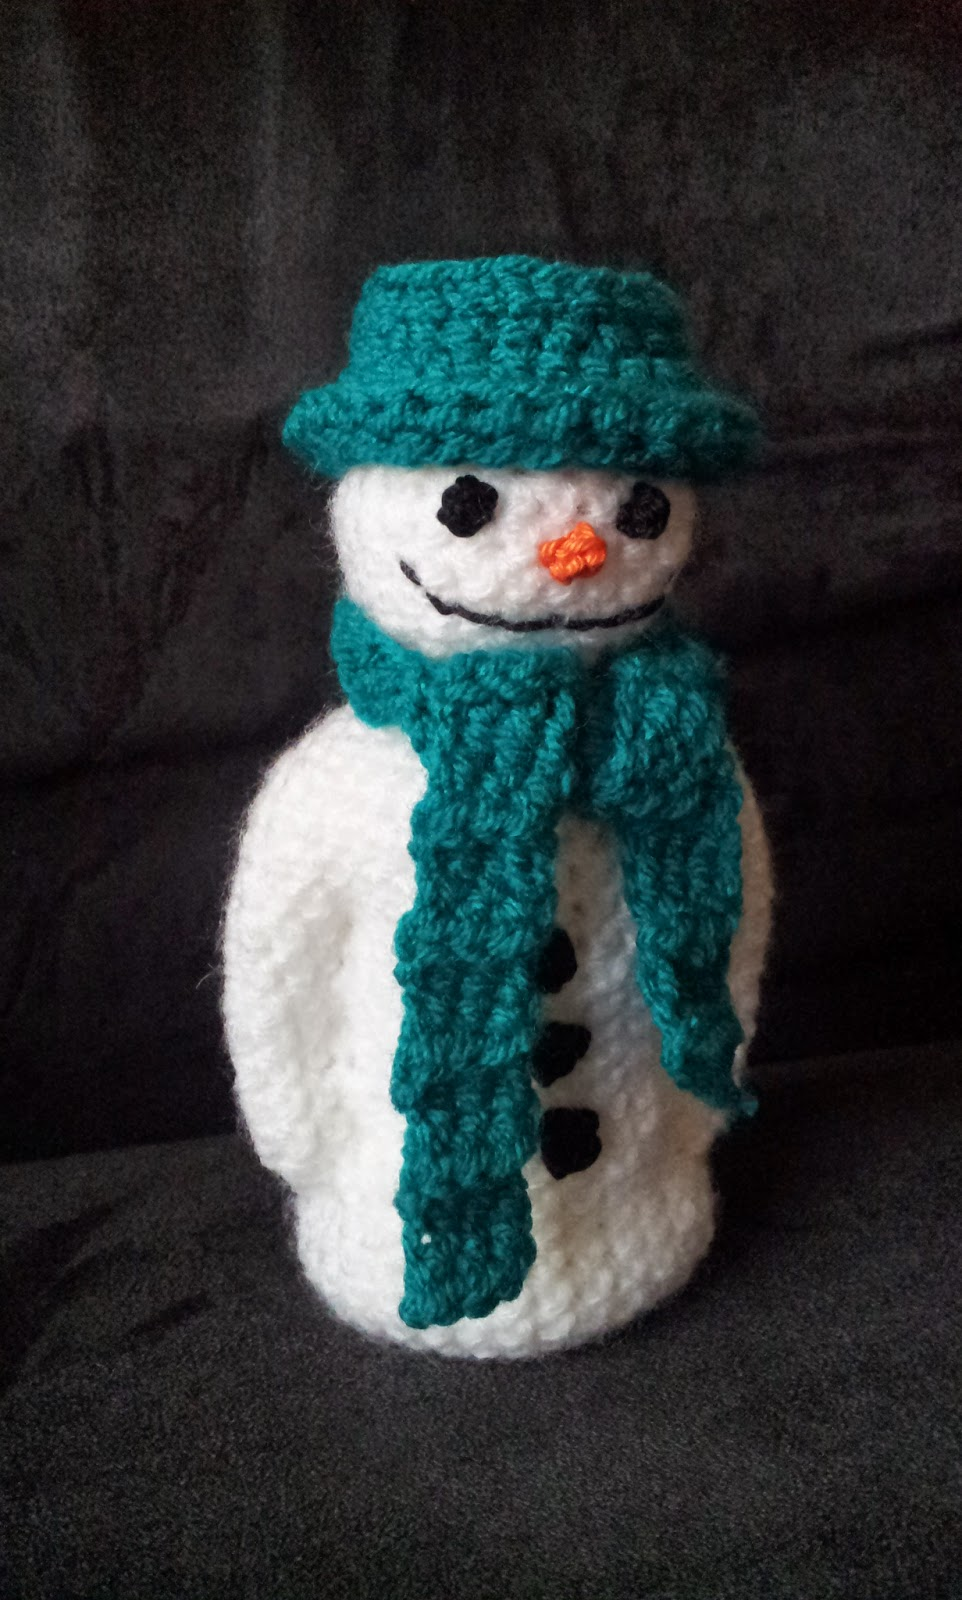 draadje\'s blog: Free Pattern: The Snowman (Raymond Briggs inspired)